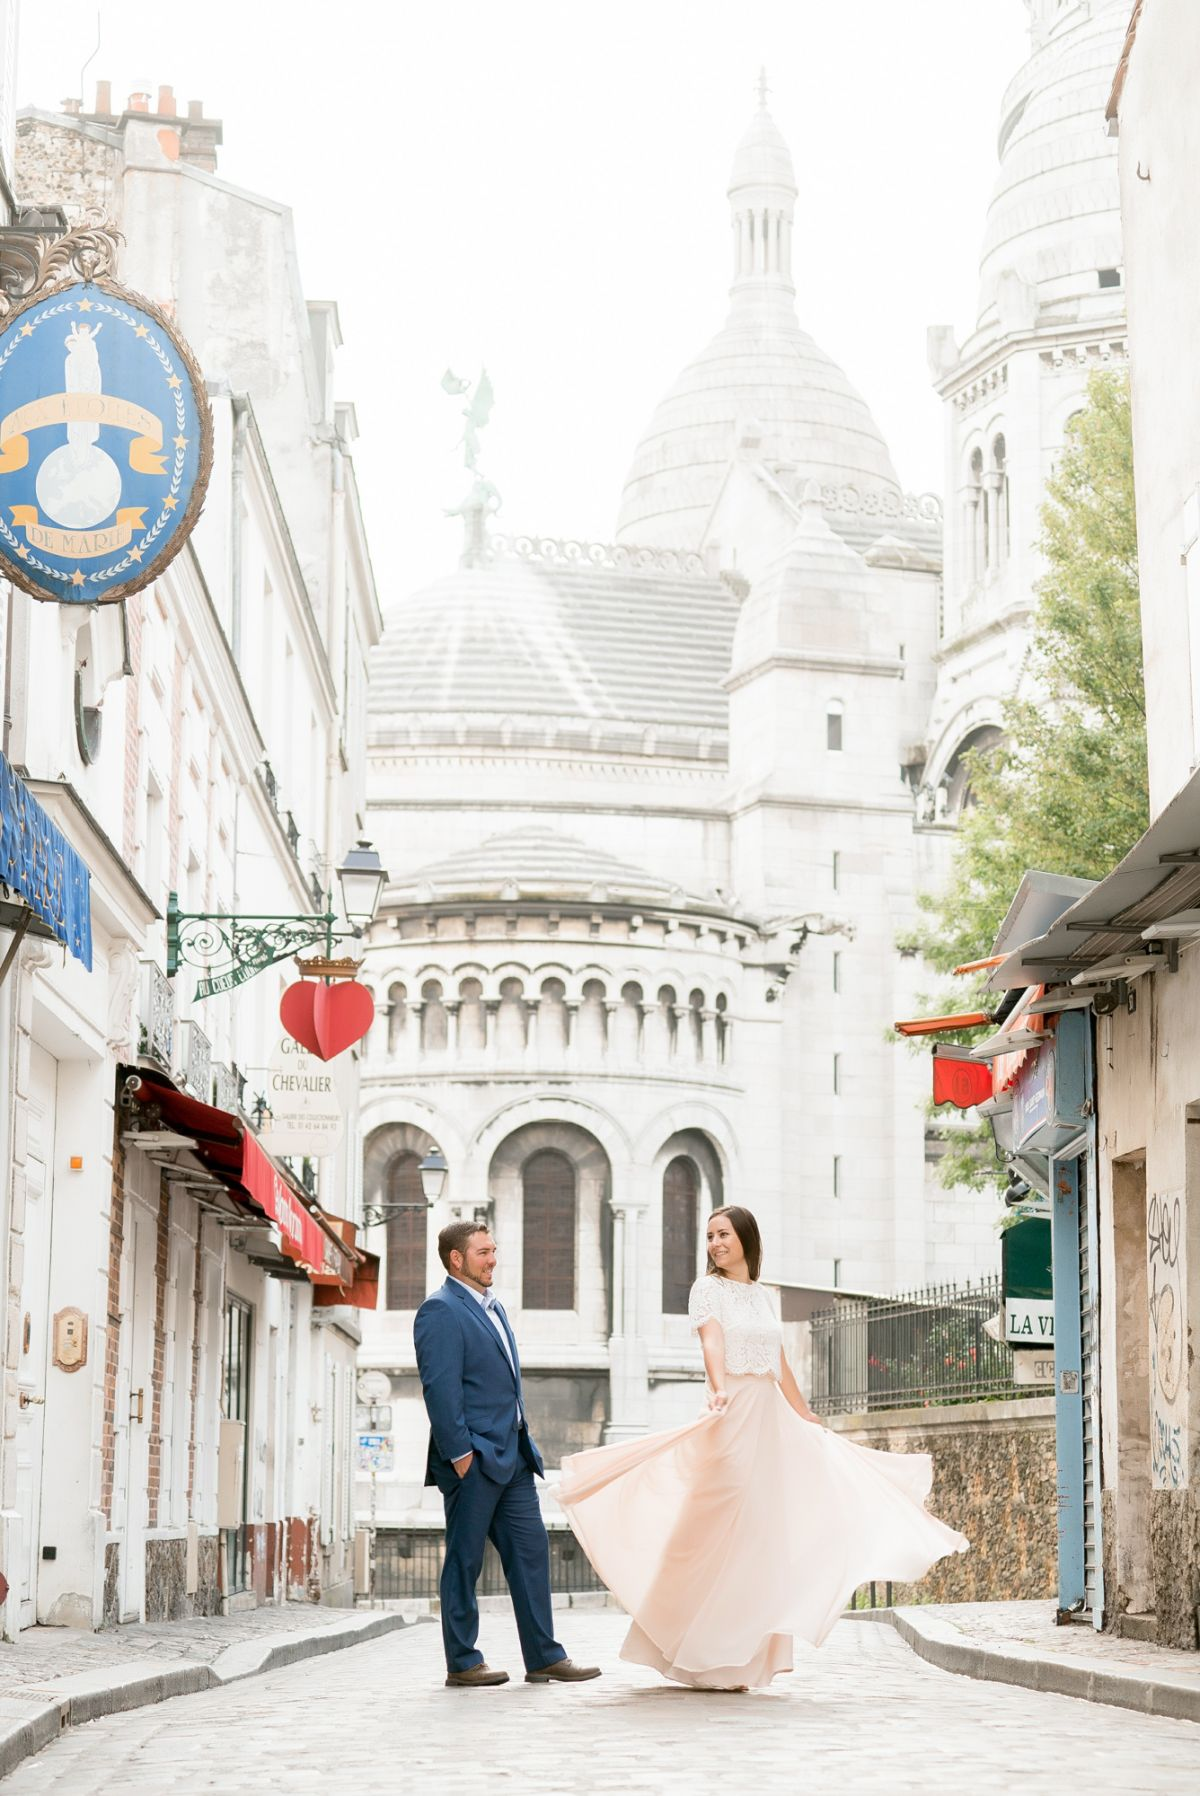 Romantic Paris Portraits in Montmartre